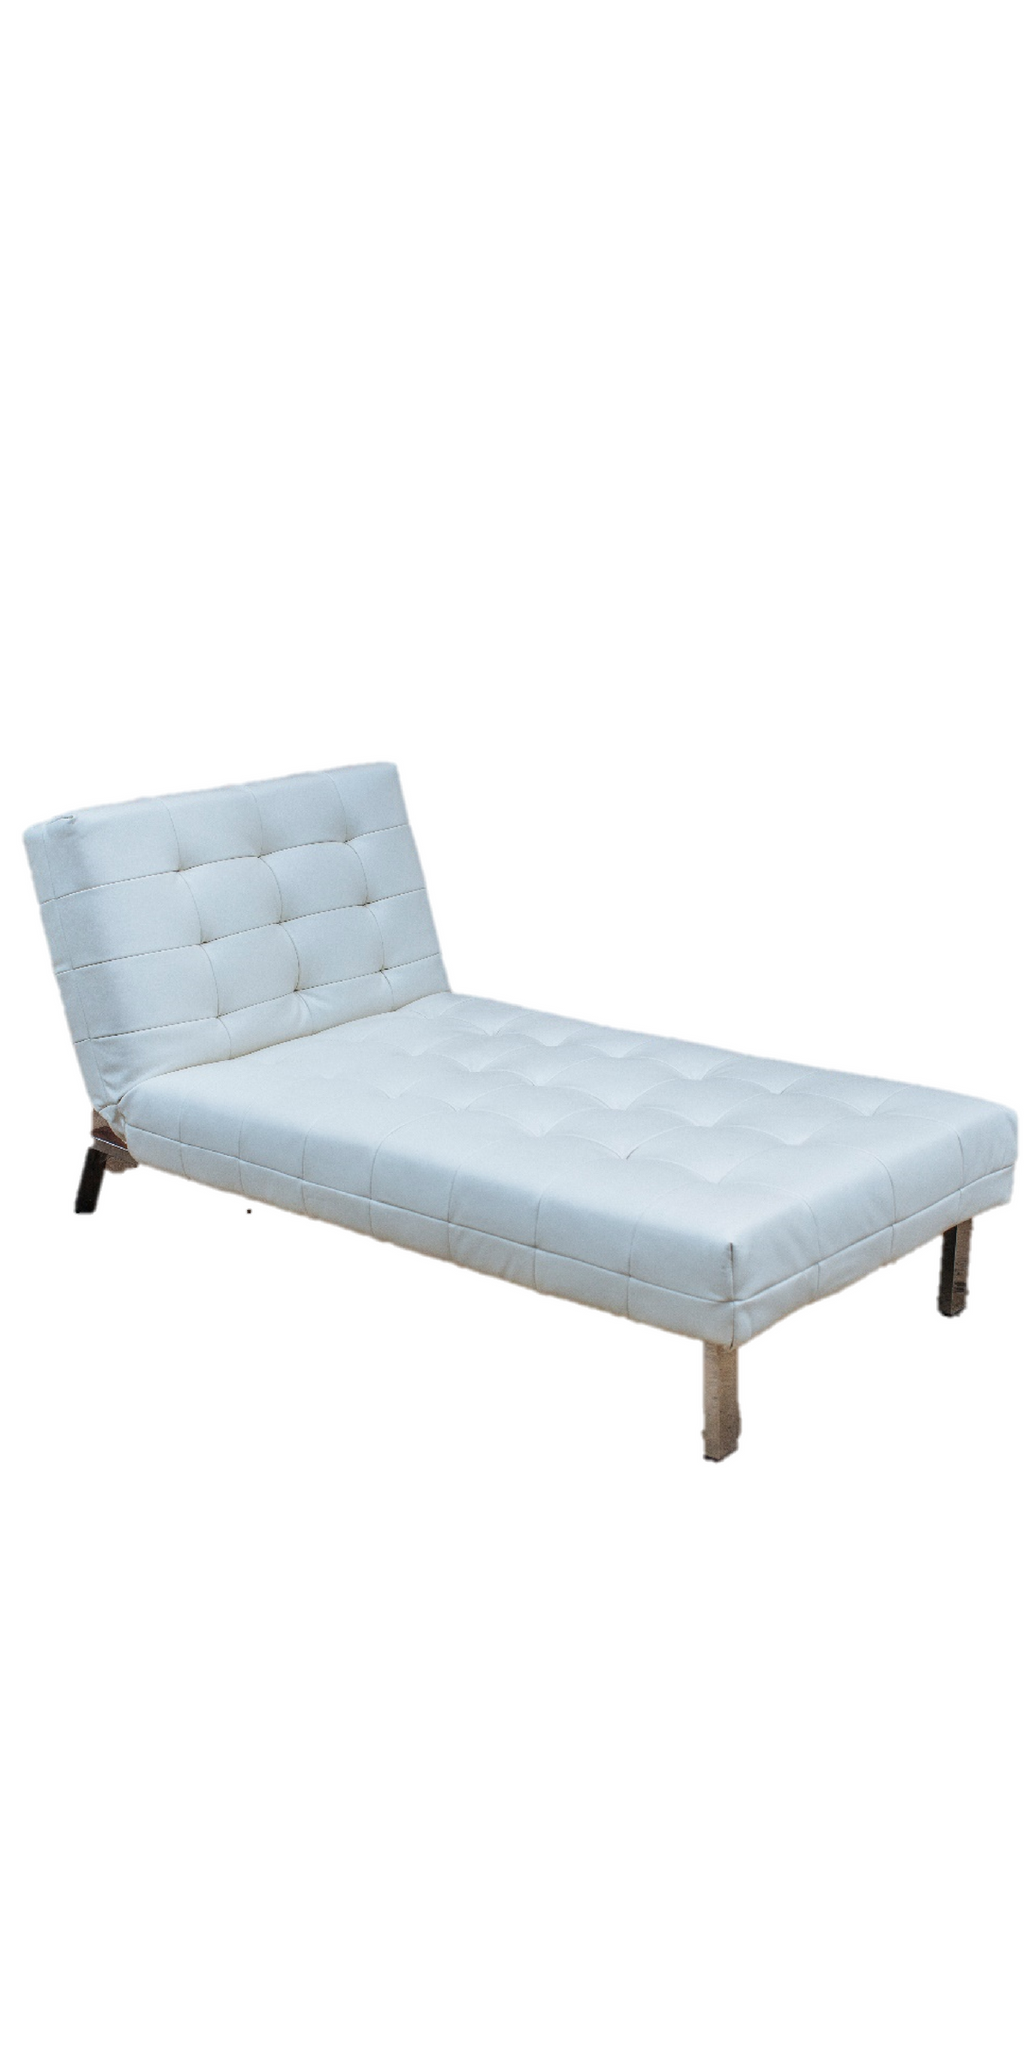 Lounge - 2 Seater leather